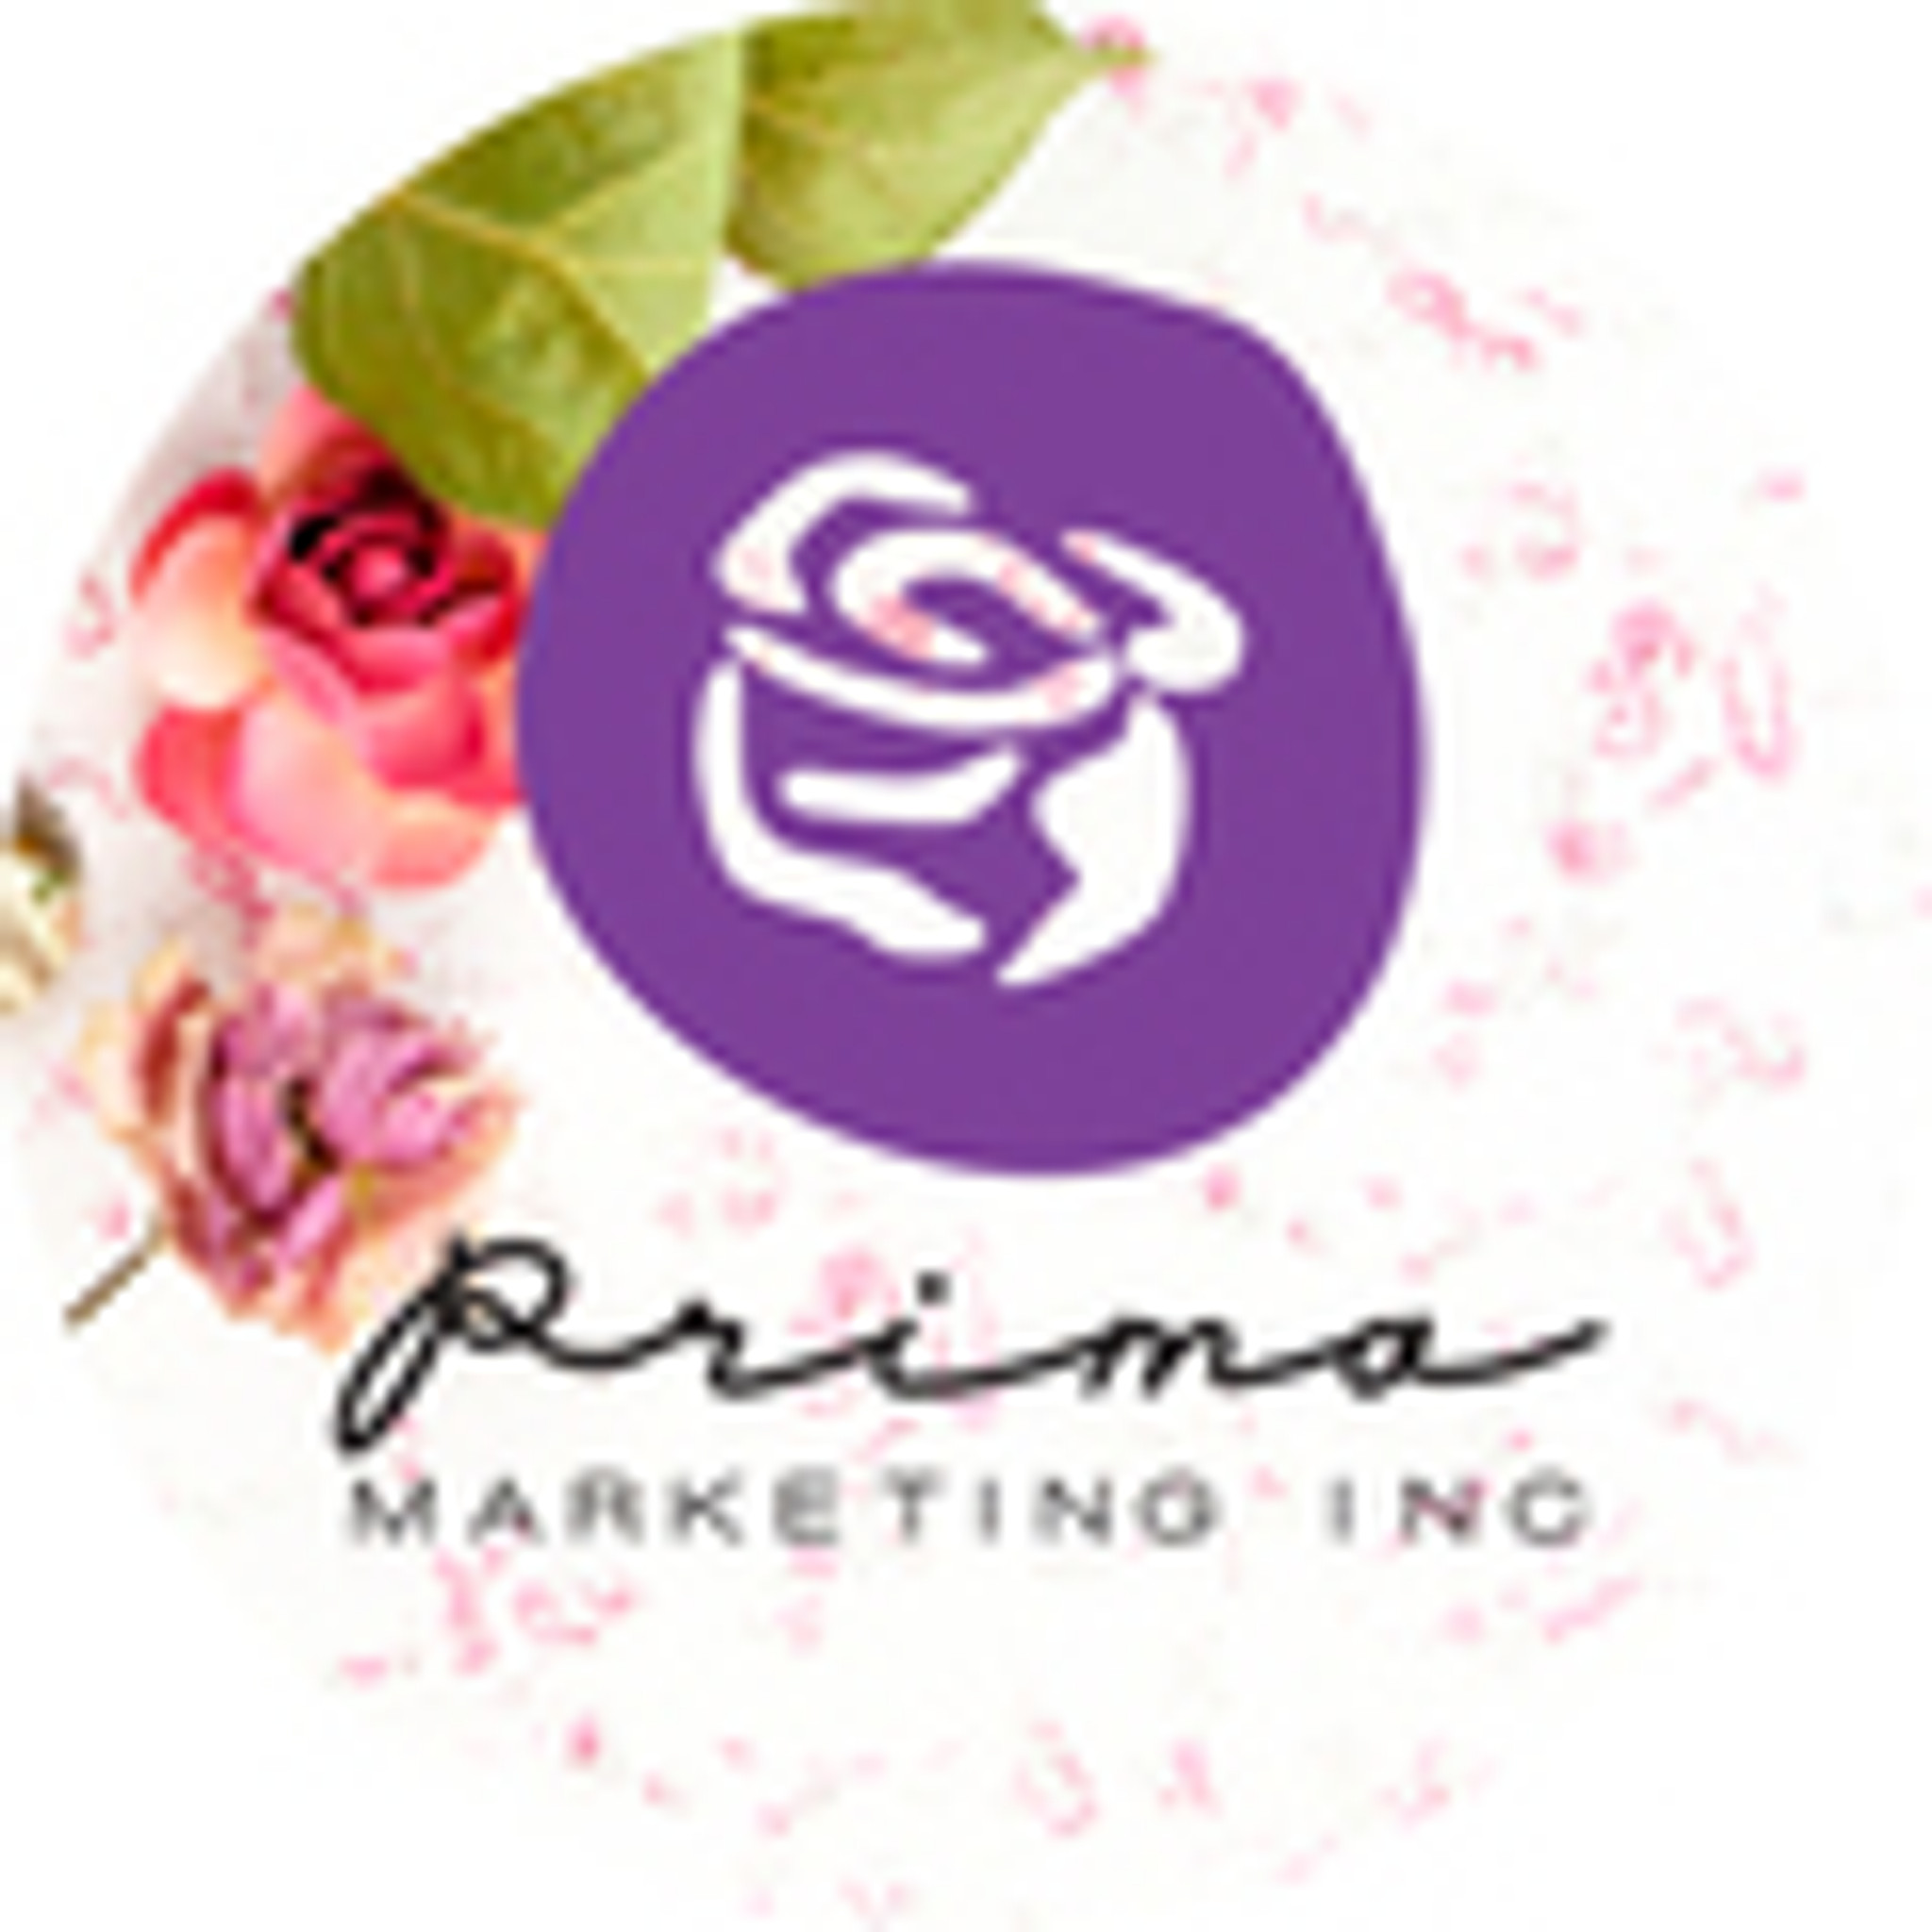 Prima Marketing, Inc.